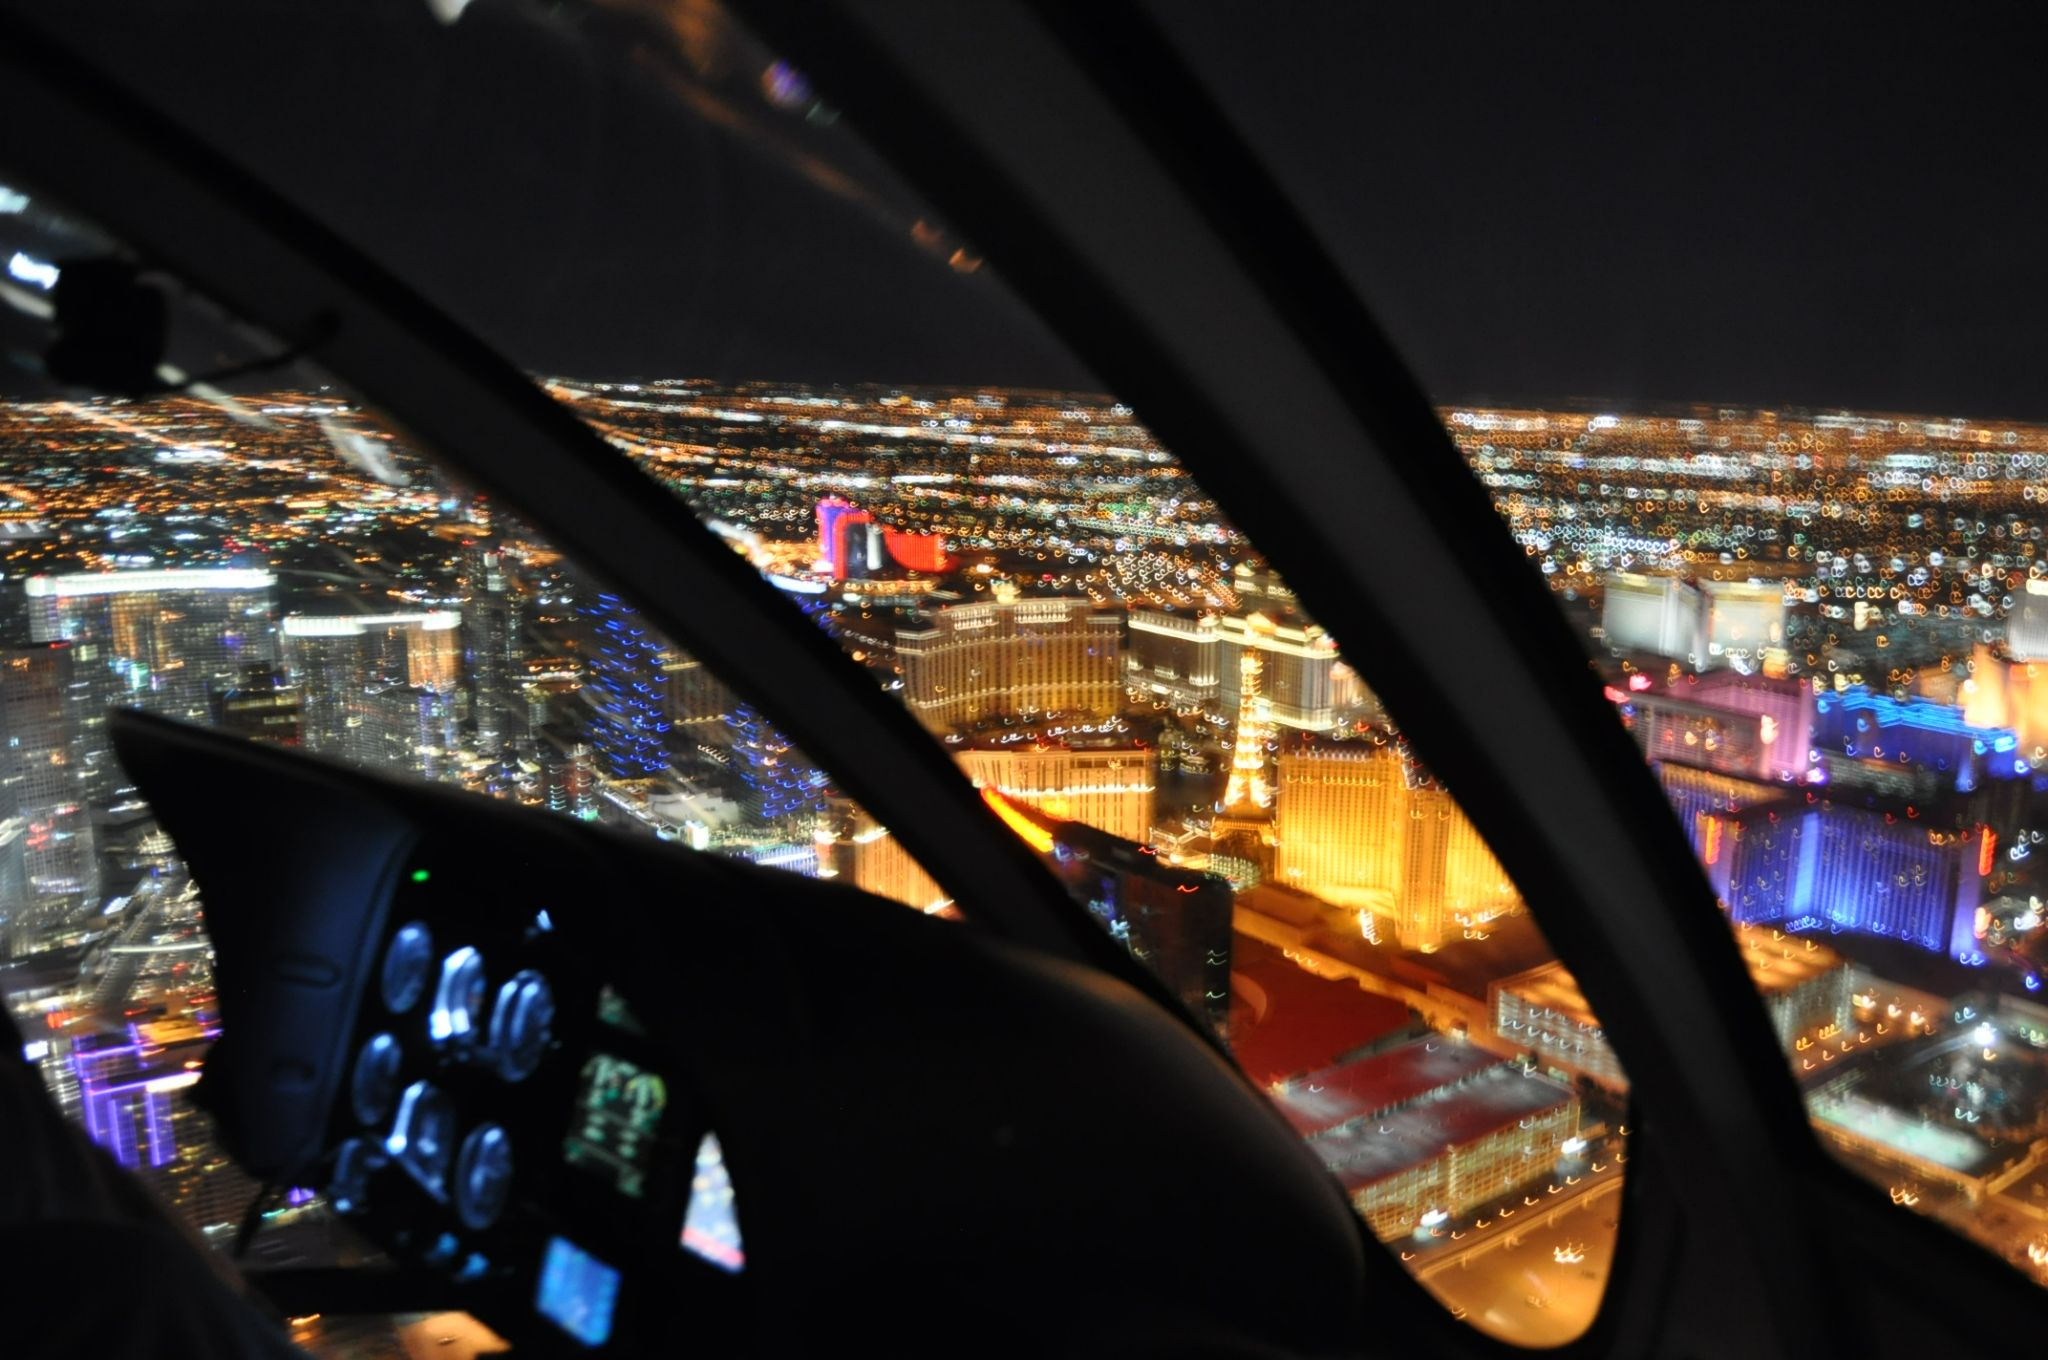 helicopter ride over a brightly lit city